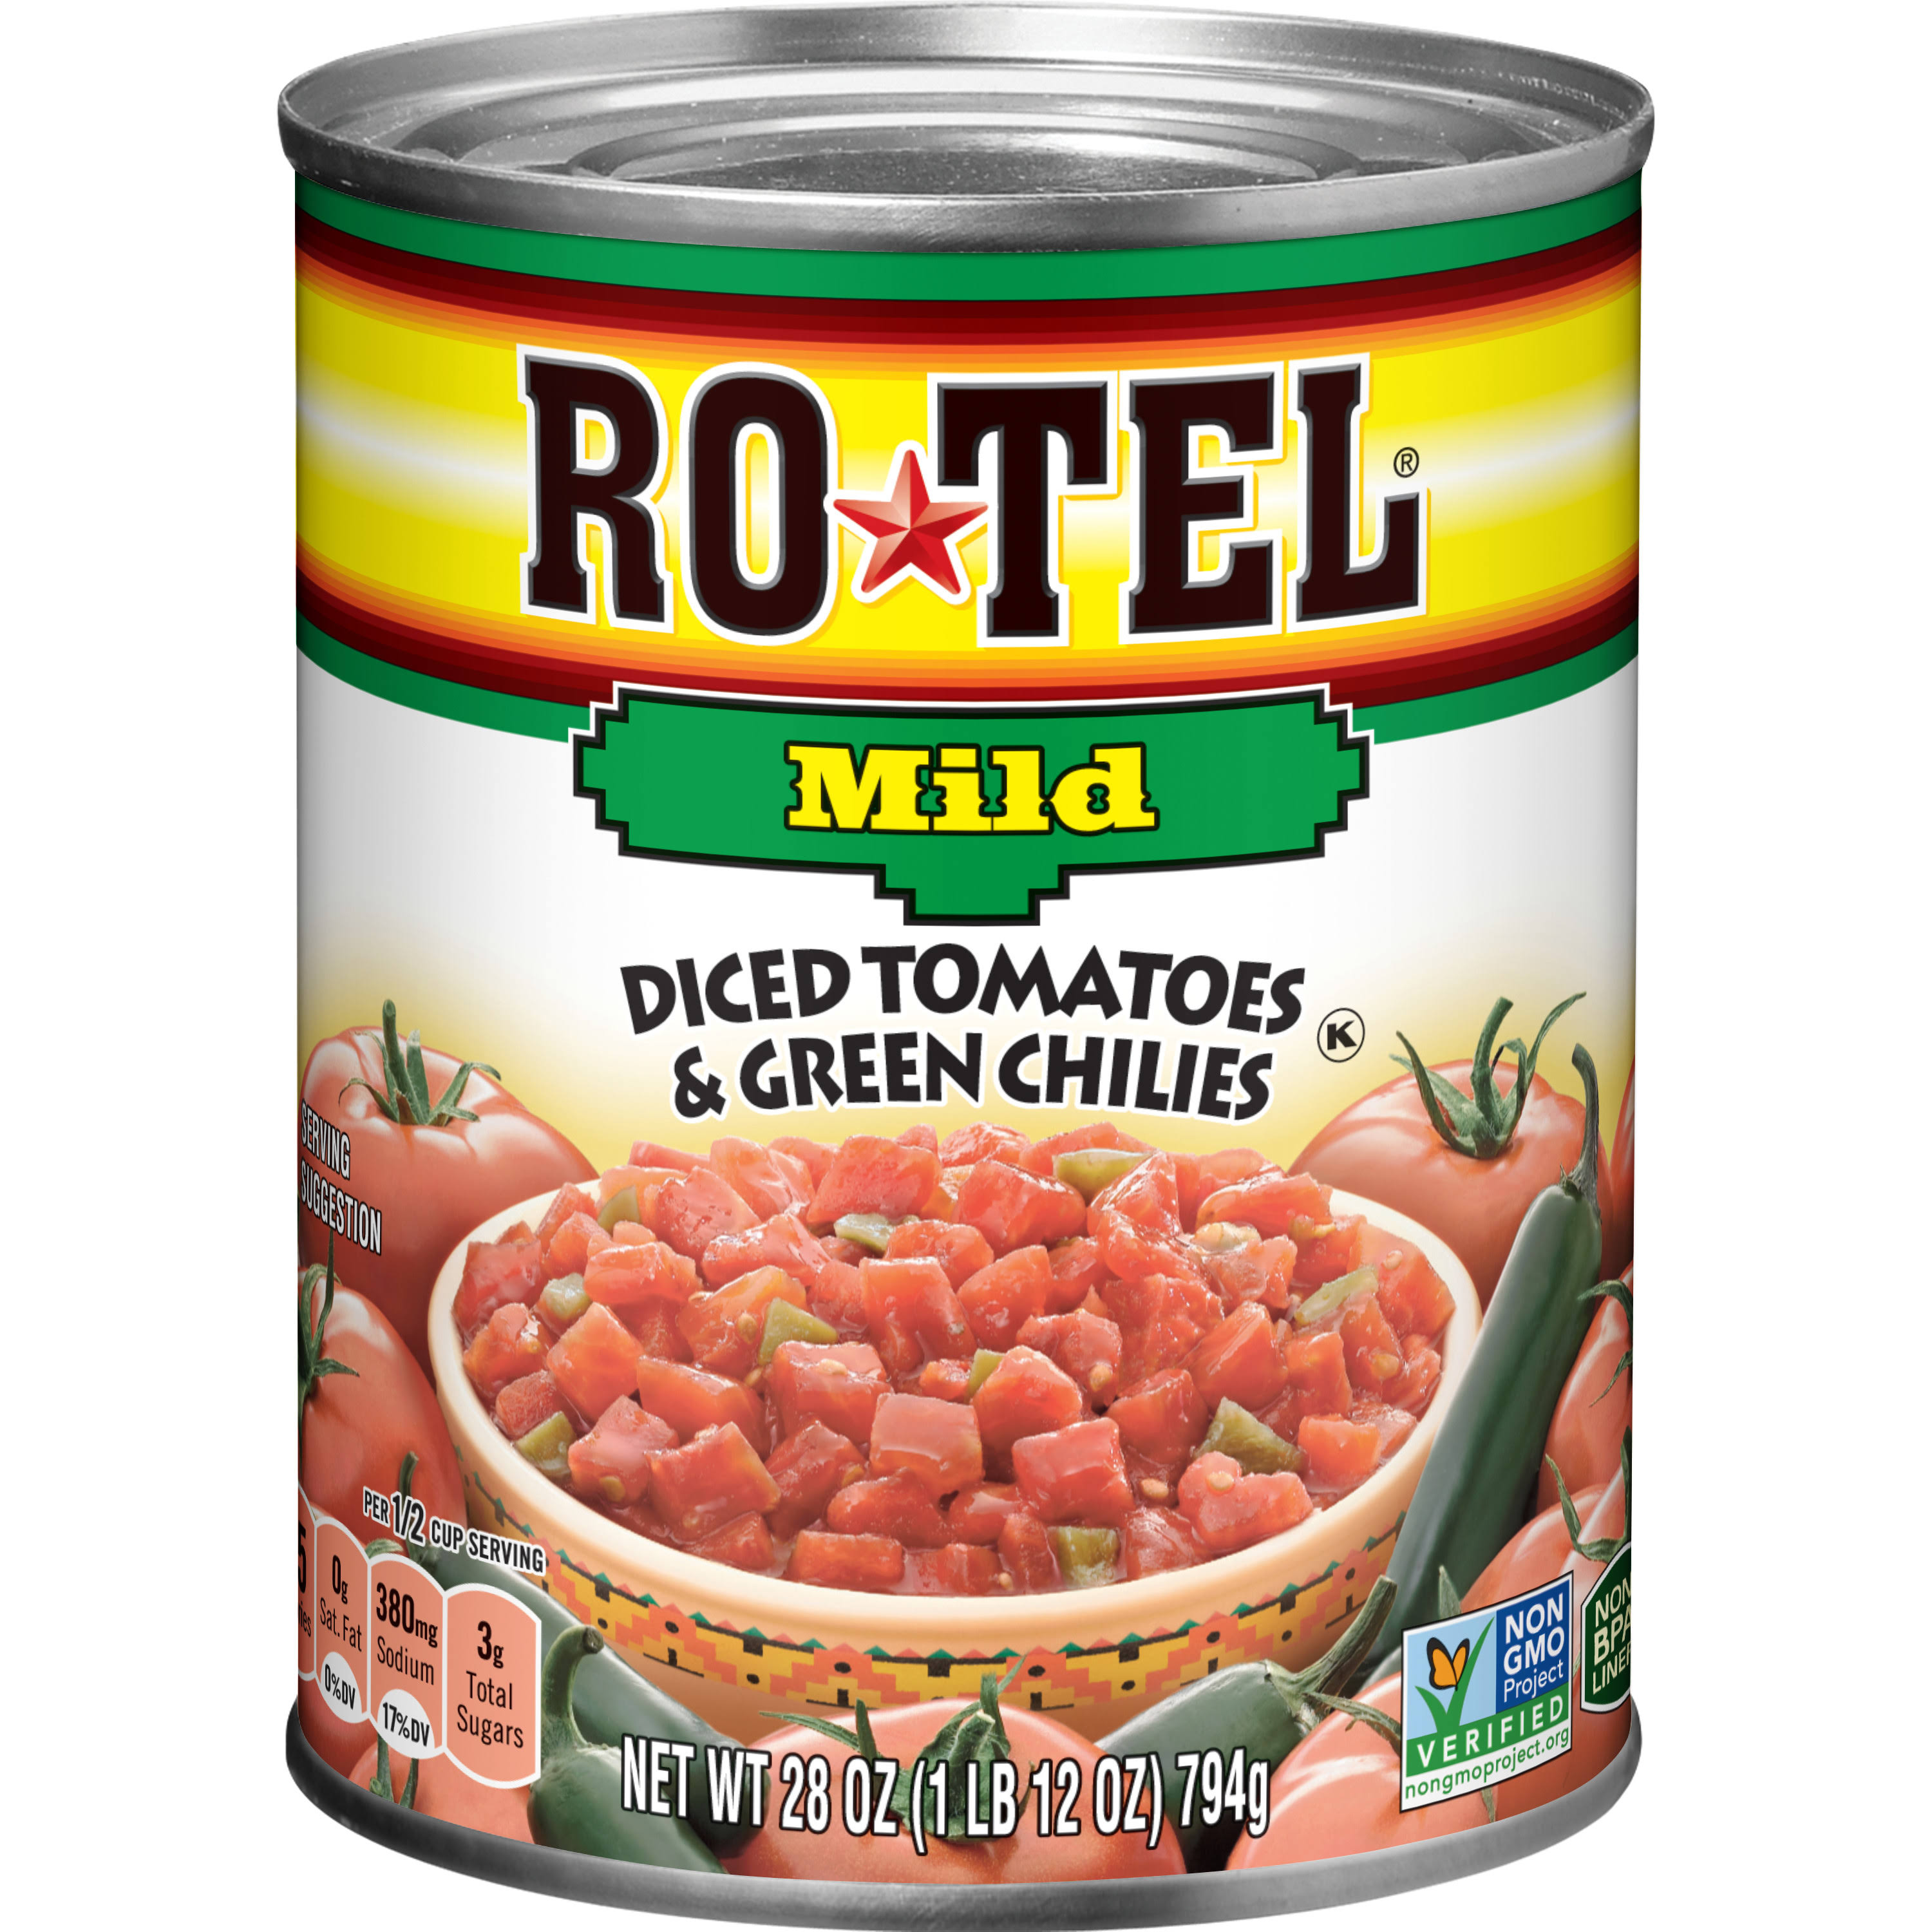 Ro*Tel Mild Diced Tomatoes & Green Chilies - 28 oz can